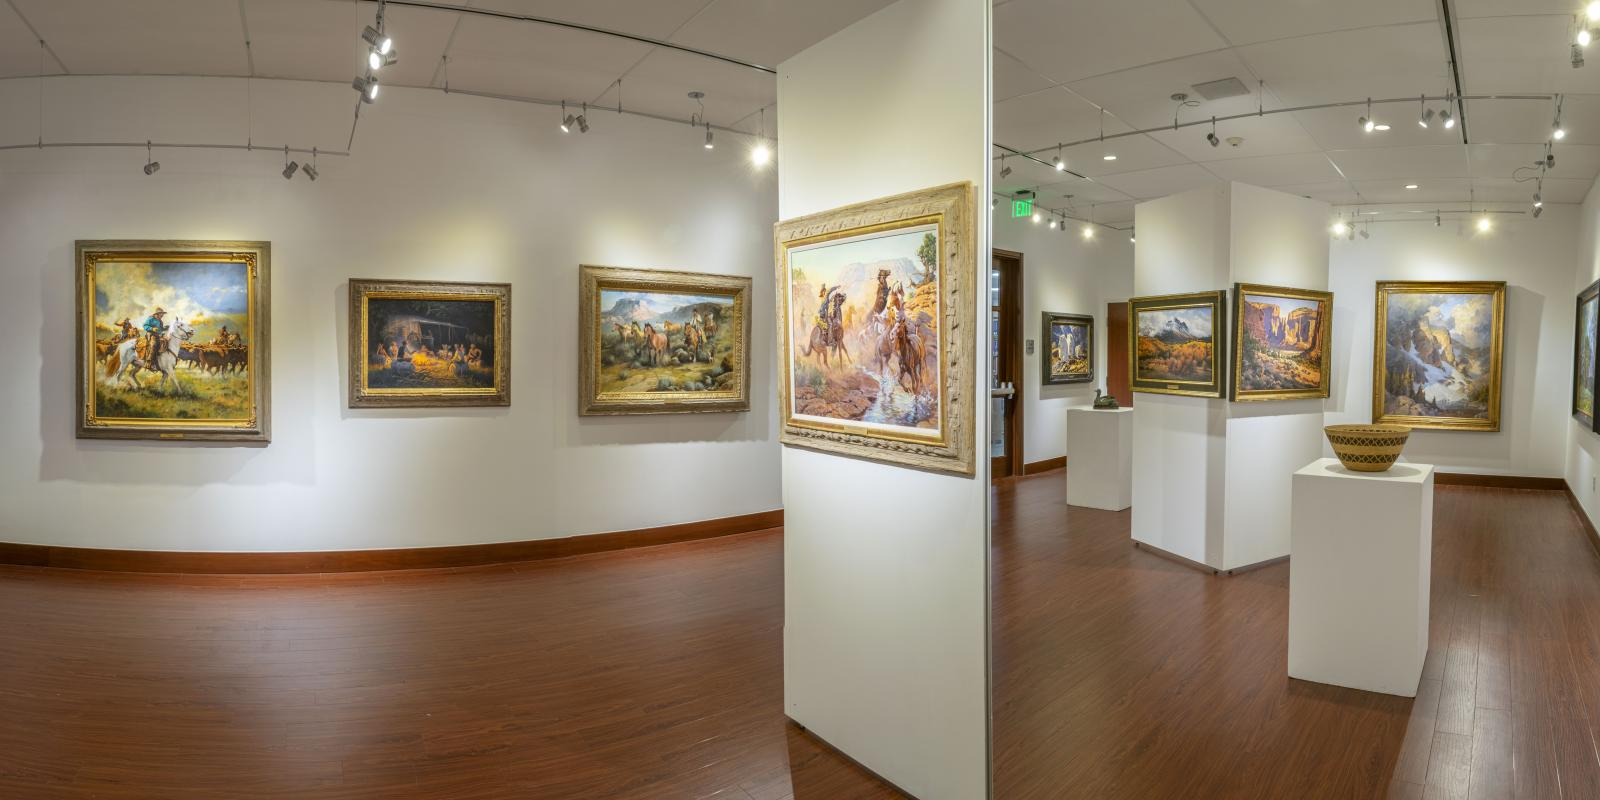 """Installation View, Entrance of gallery, """"Art of the West: New Acquisitions"""" Exhibition, Jun 24, 2019 to Sep26, 2019, Curator: Michele Cairella Fillmore, Don B. Huntley Gallery, Cal Poly Pomona."""